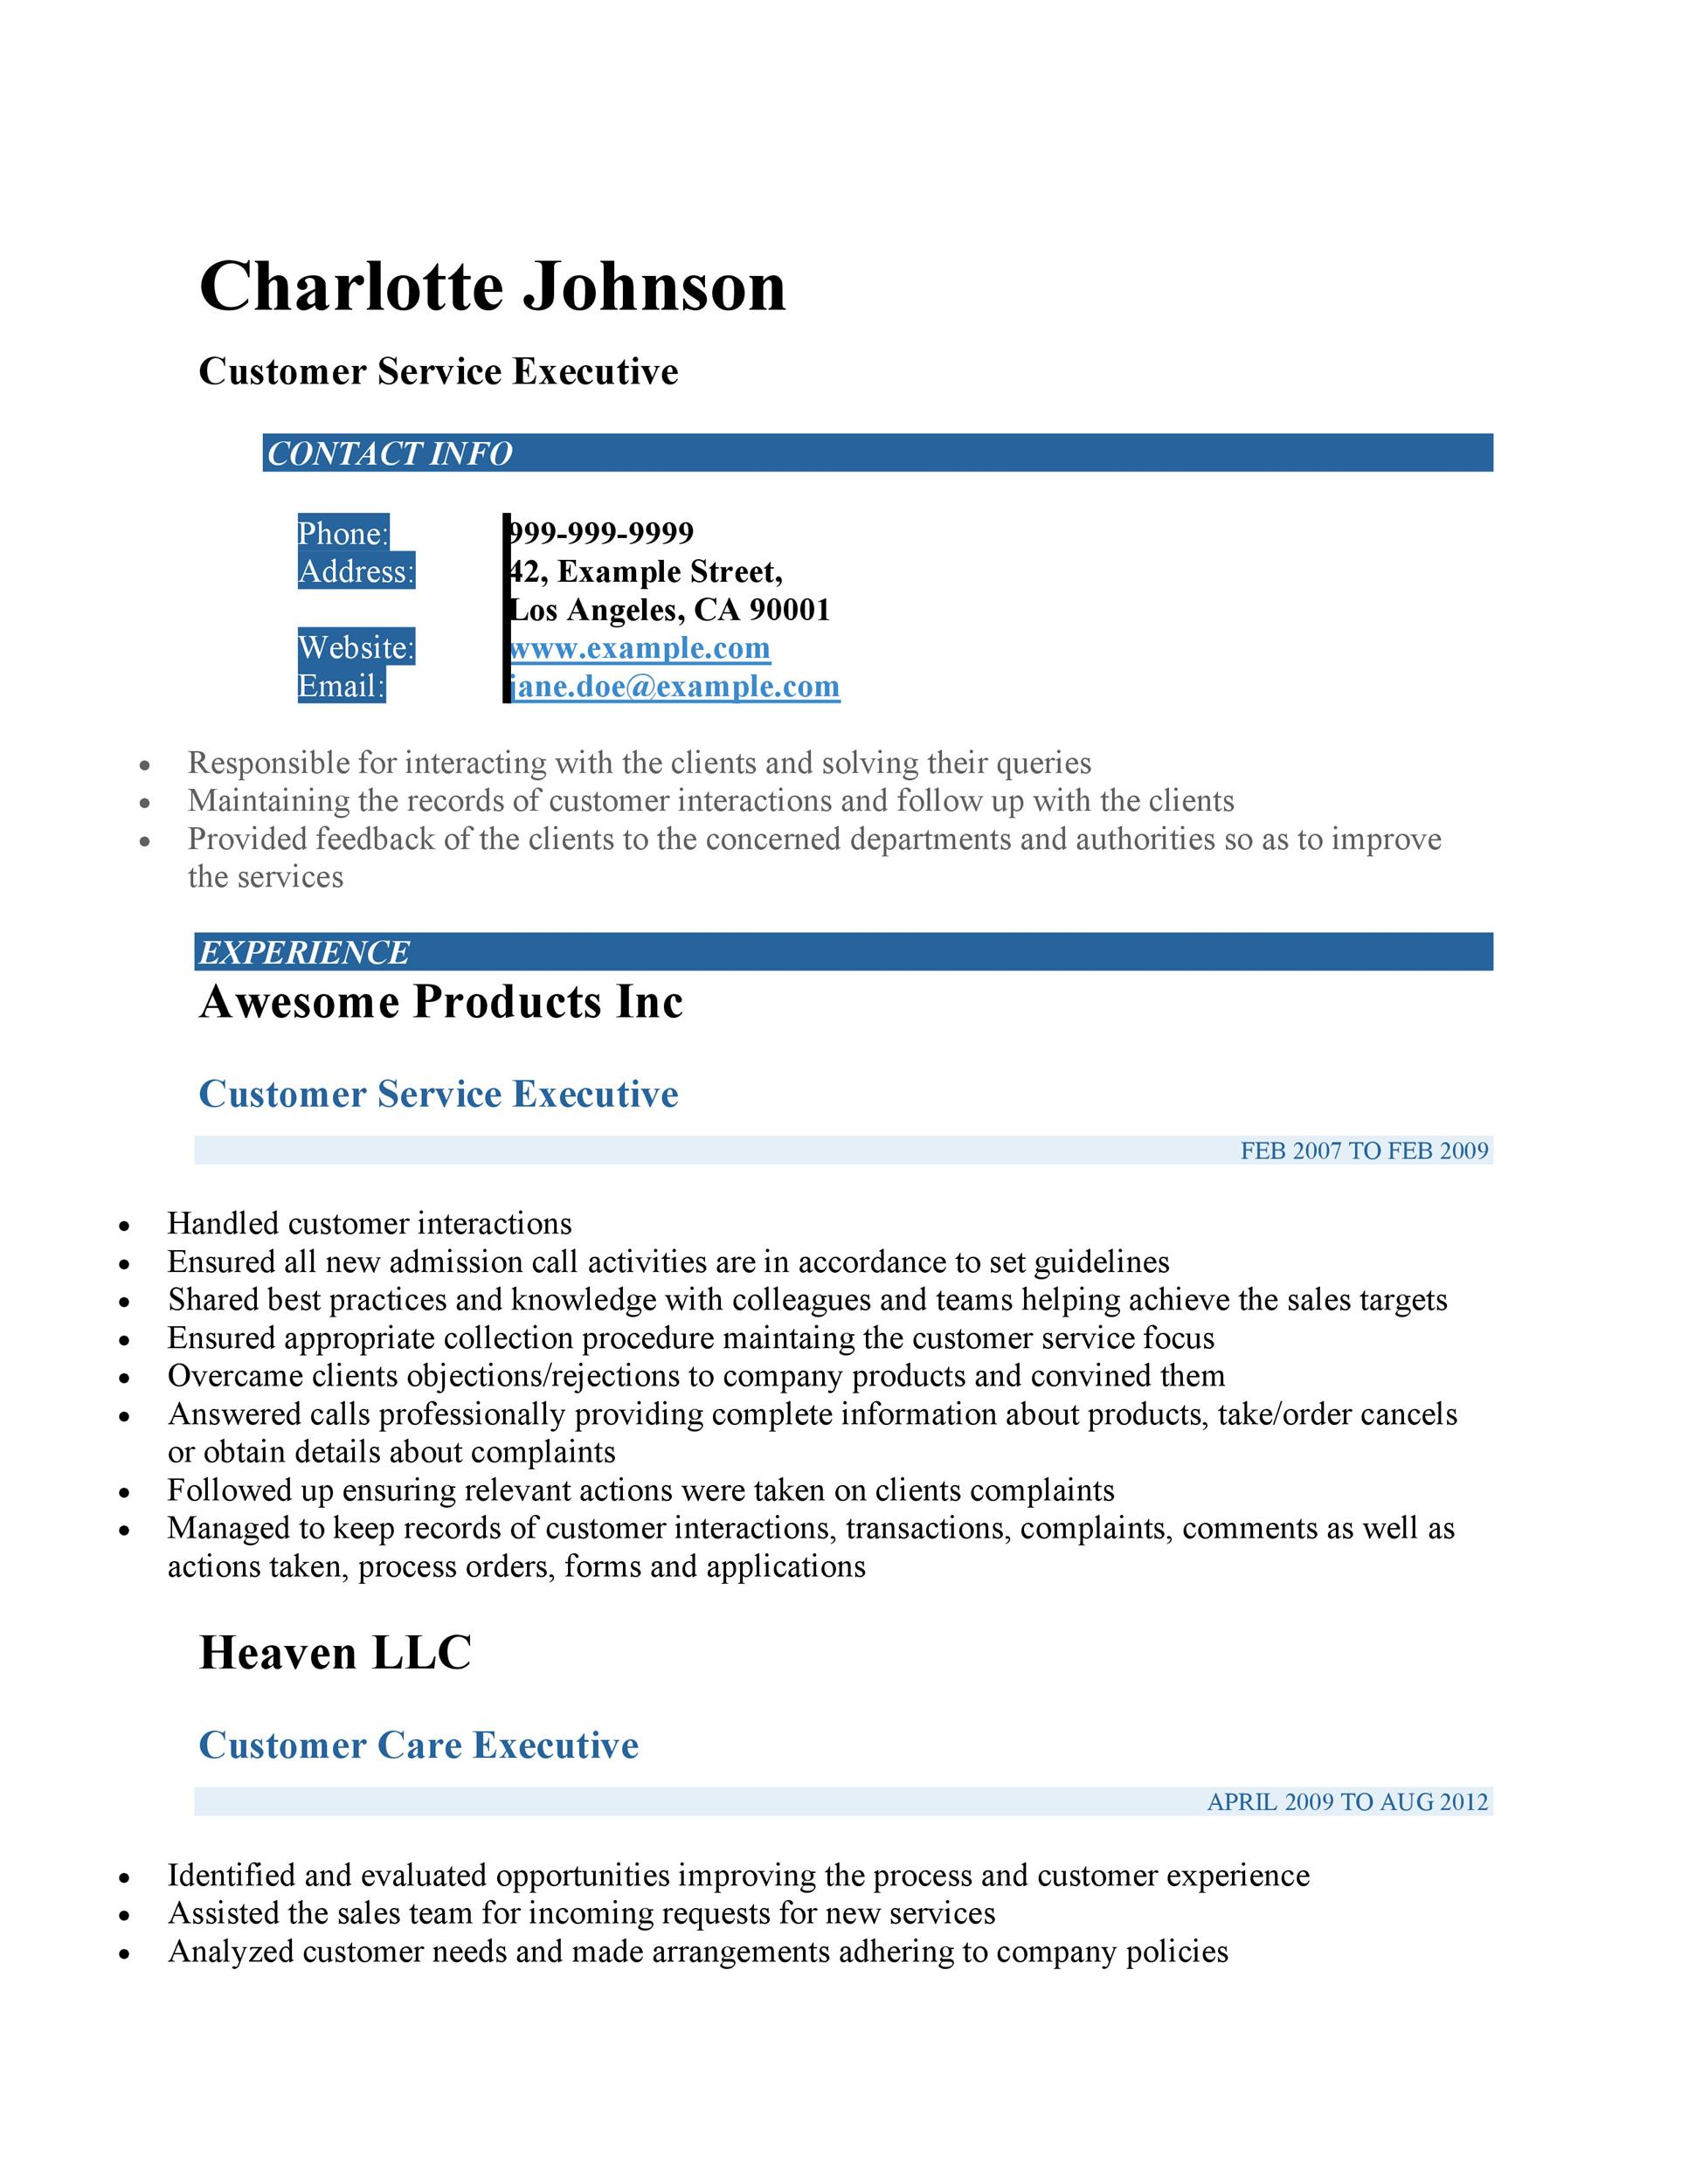 resume for customer service executive